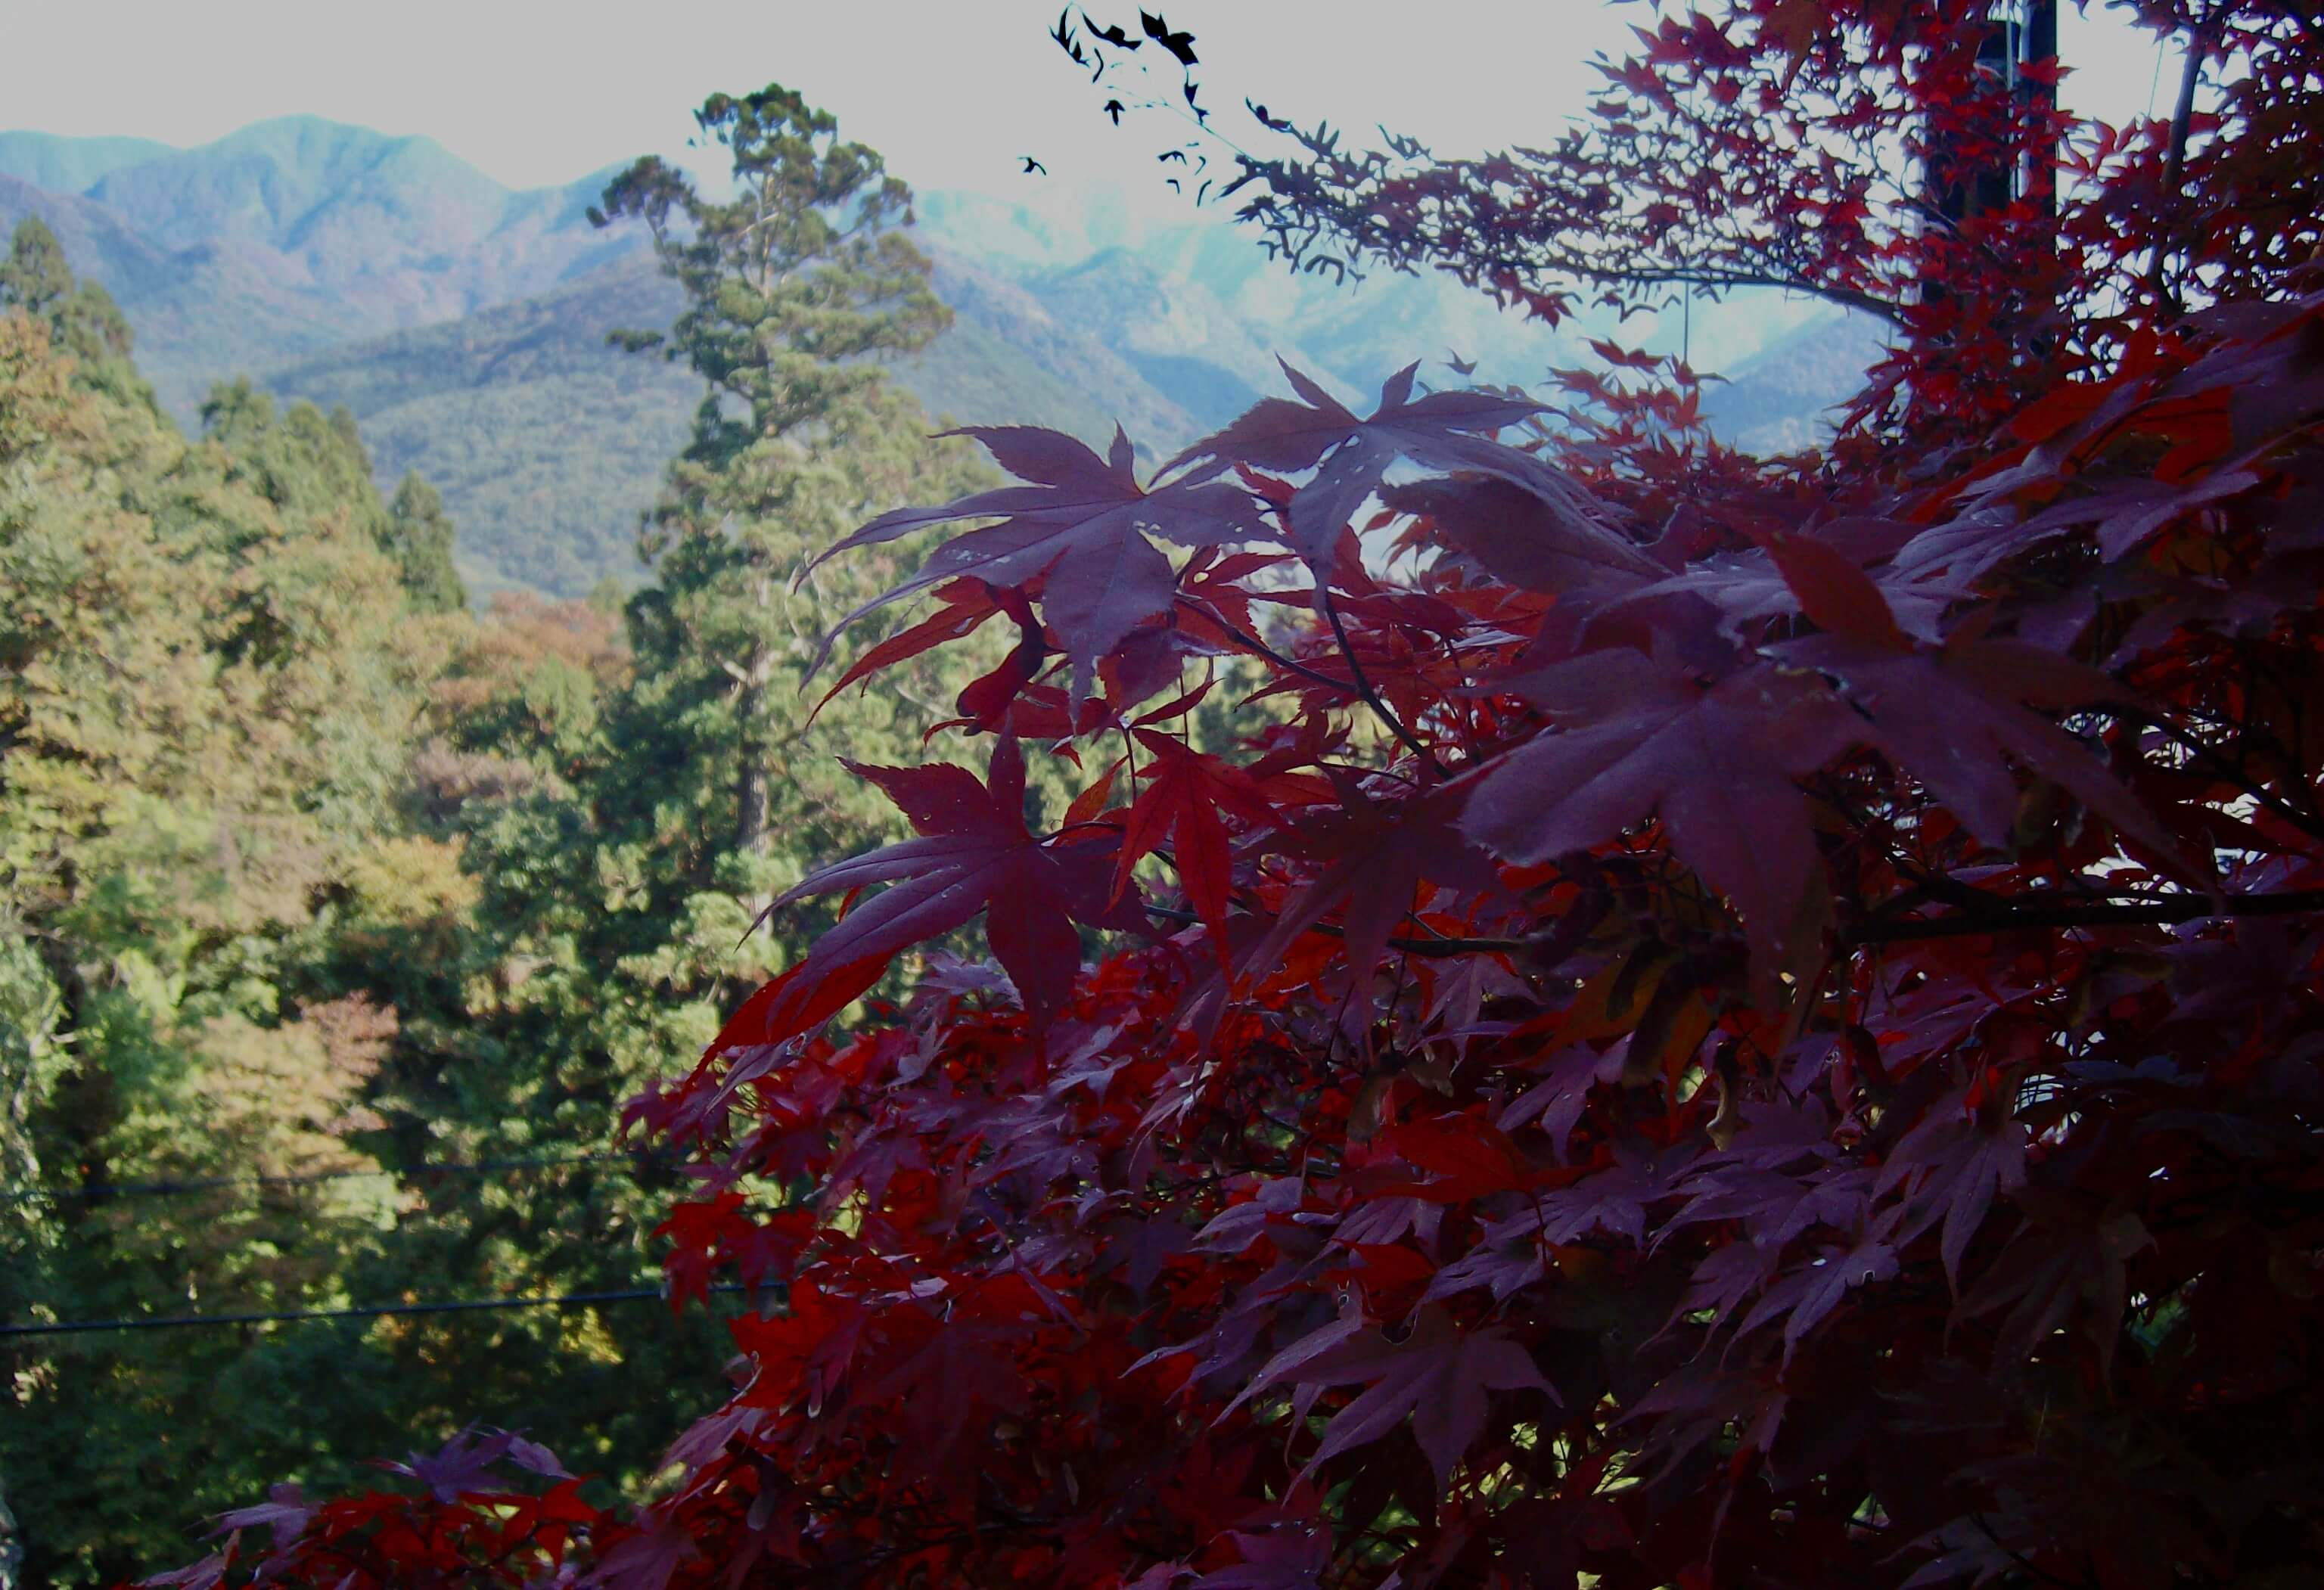 Autumn colours at Yamadera, Yamagata